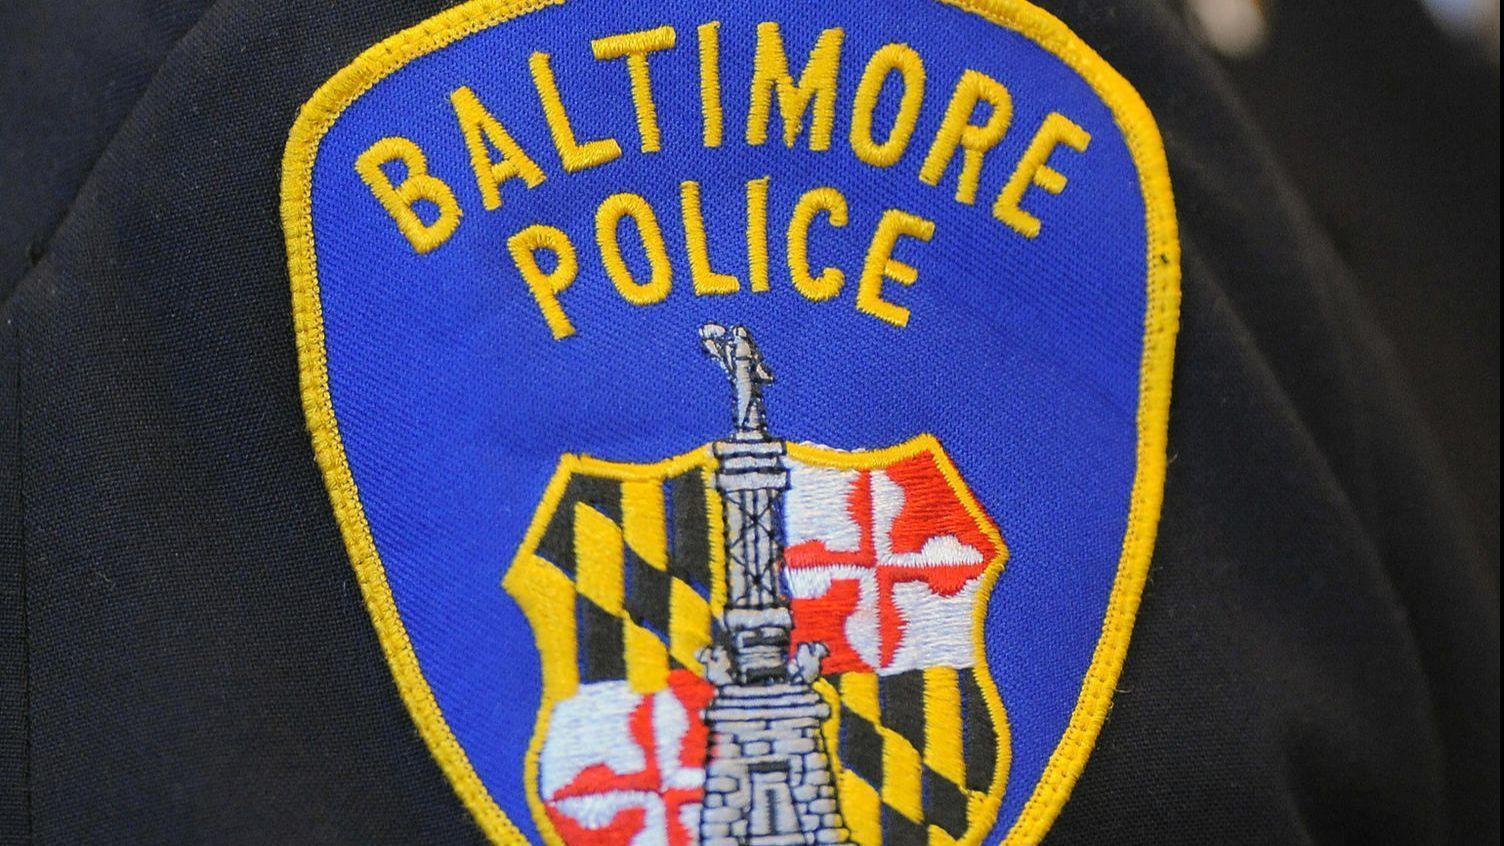 Baltimore police officer gets probation for hitting man in face during traffic stop